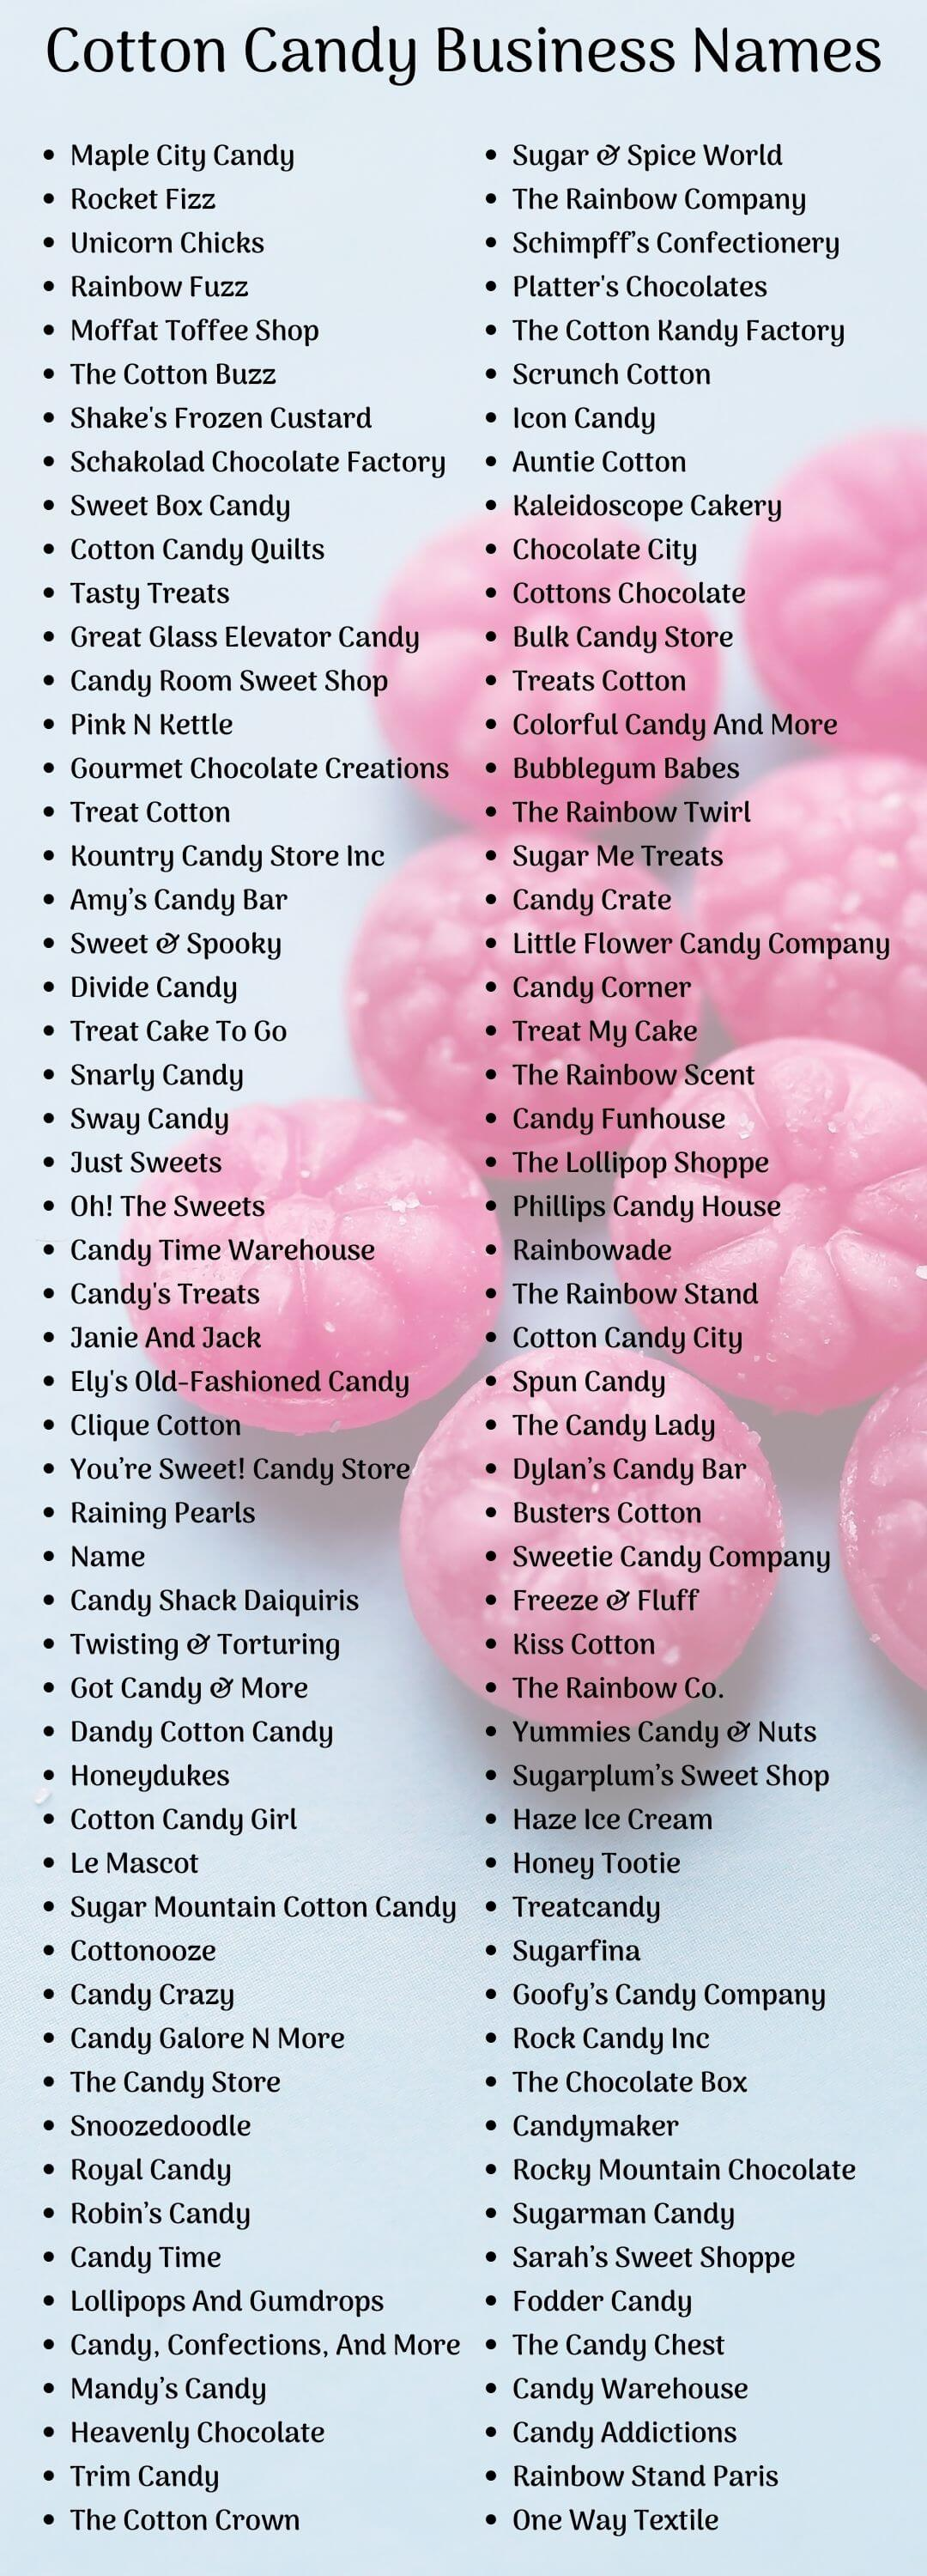 Cotton Candy Business Names ideas